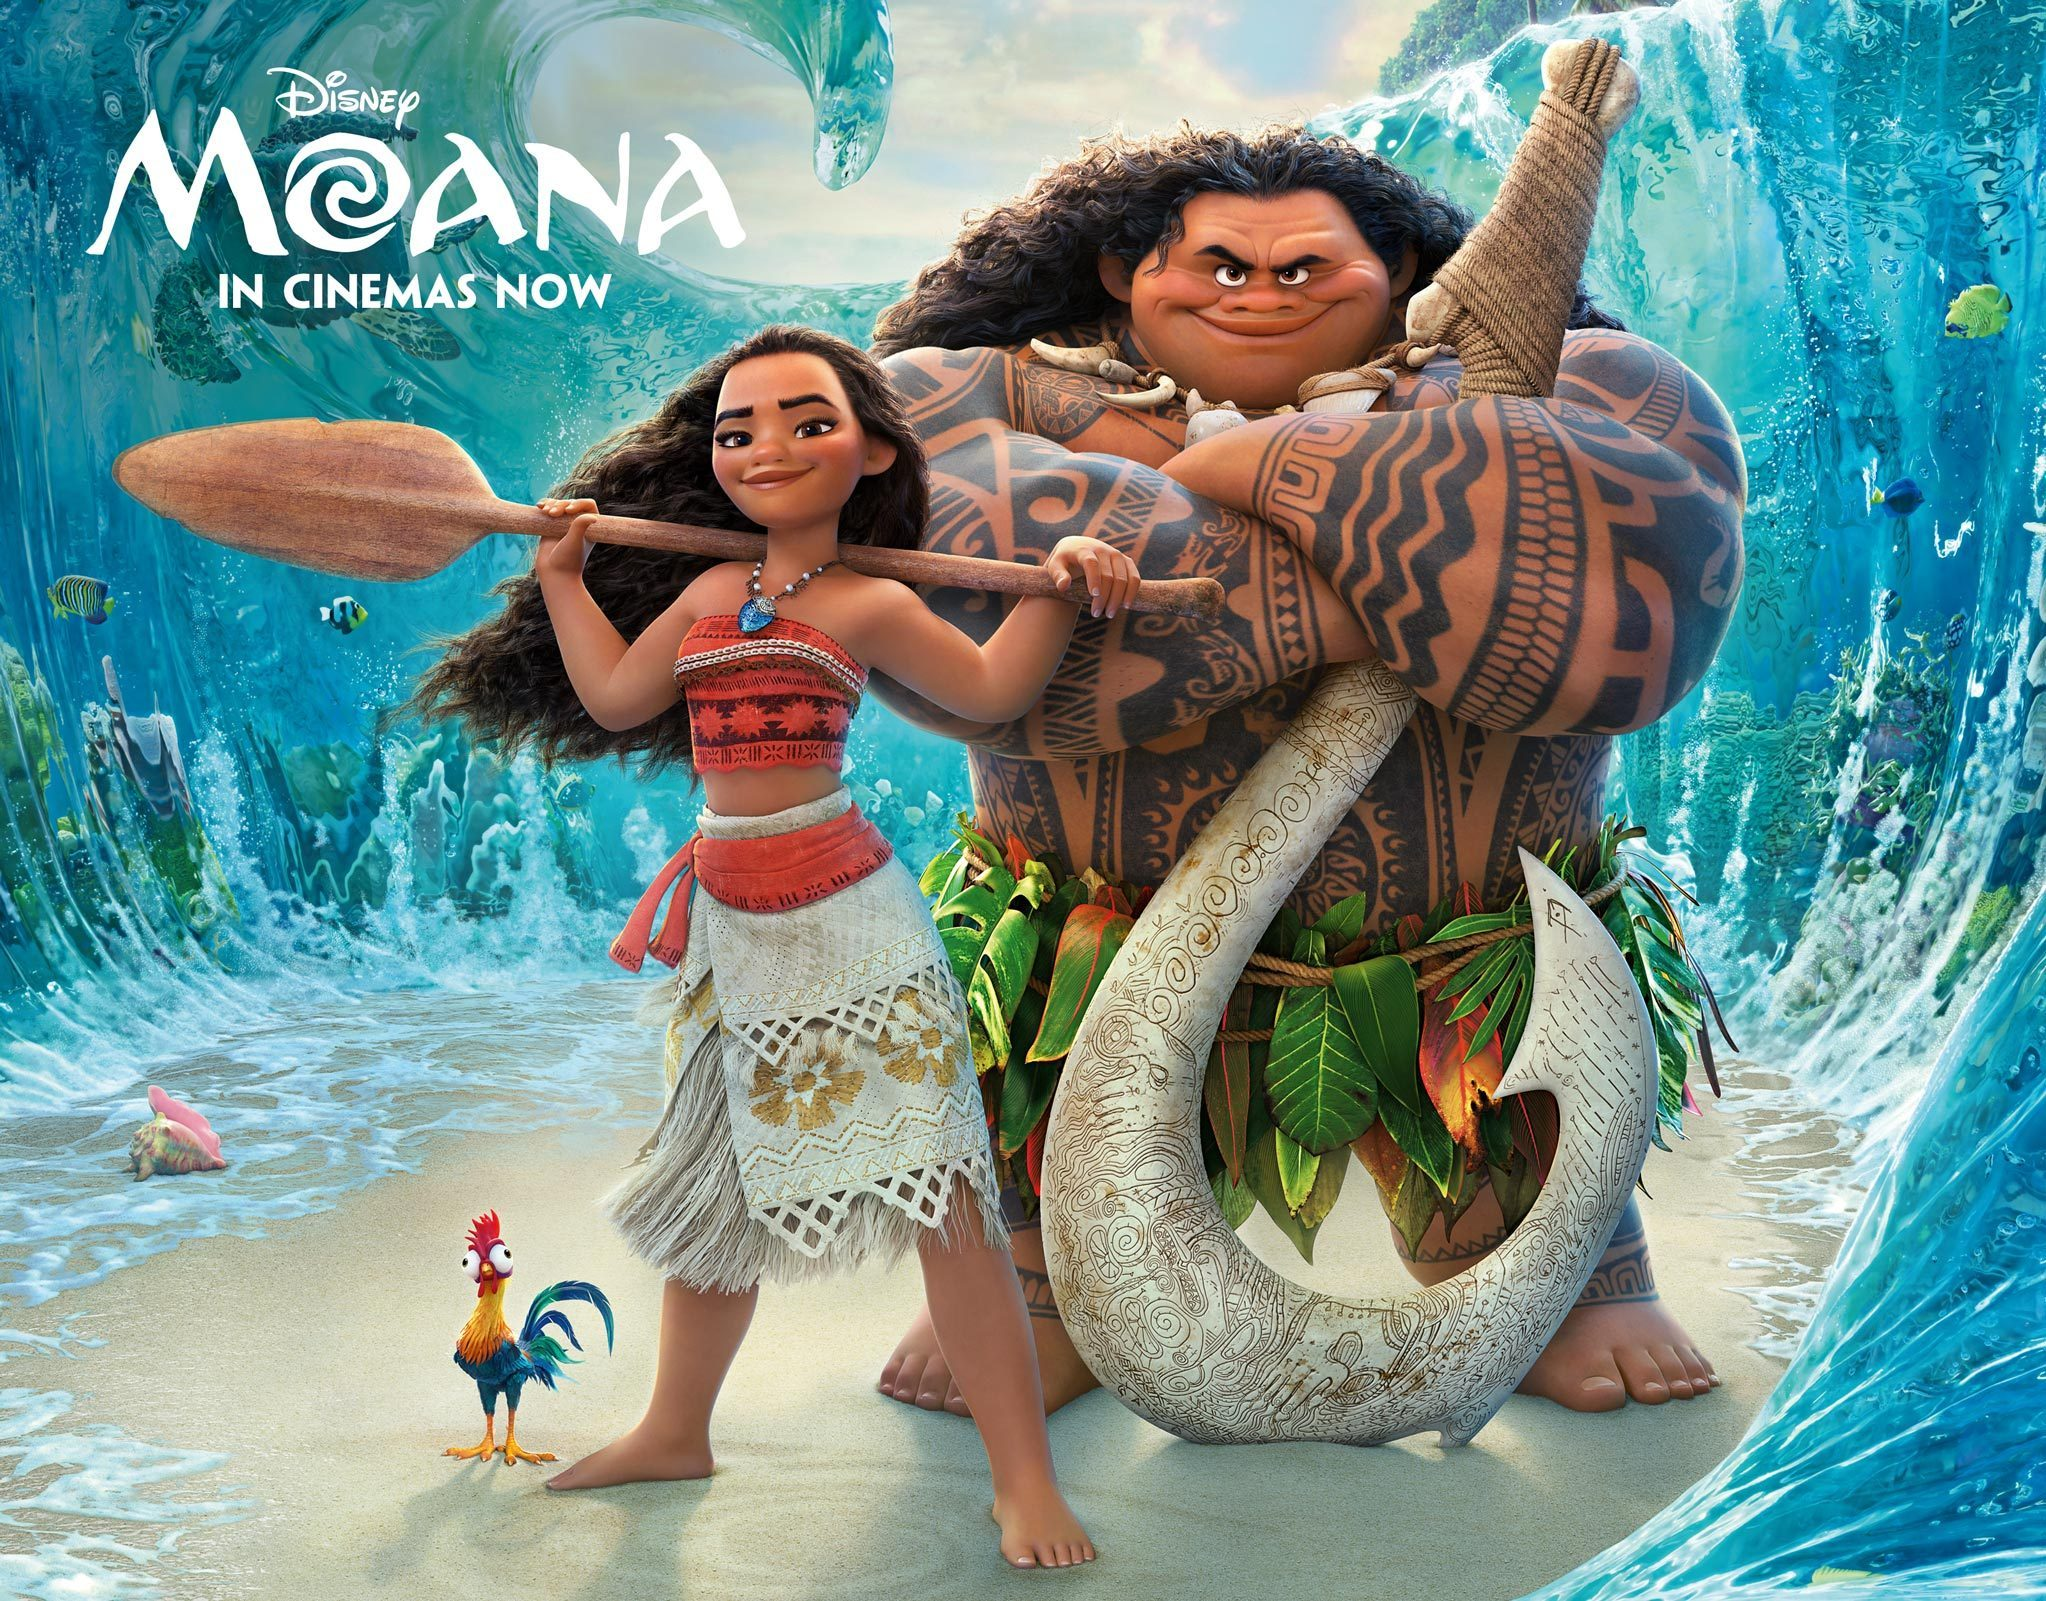 rich_moana_in_cinemas_now_d4e39afa.jpeg